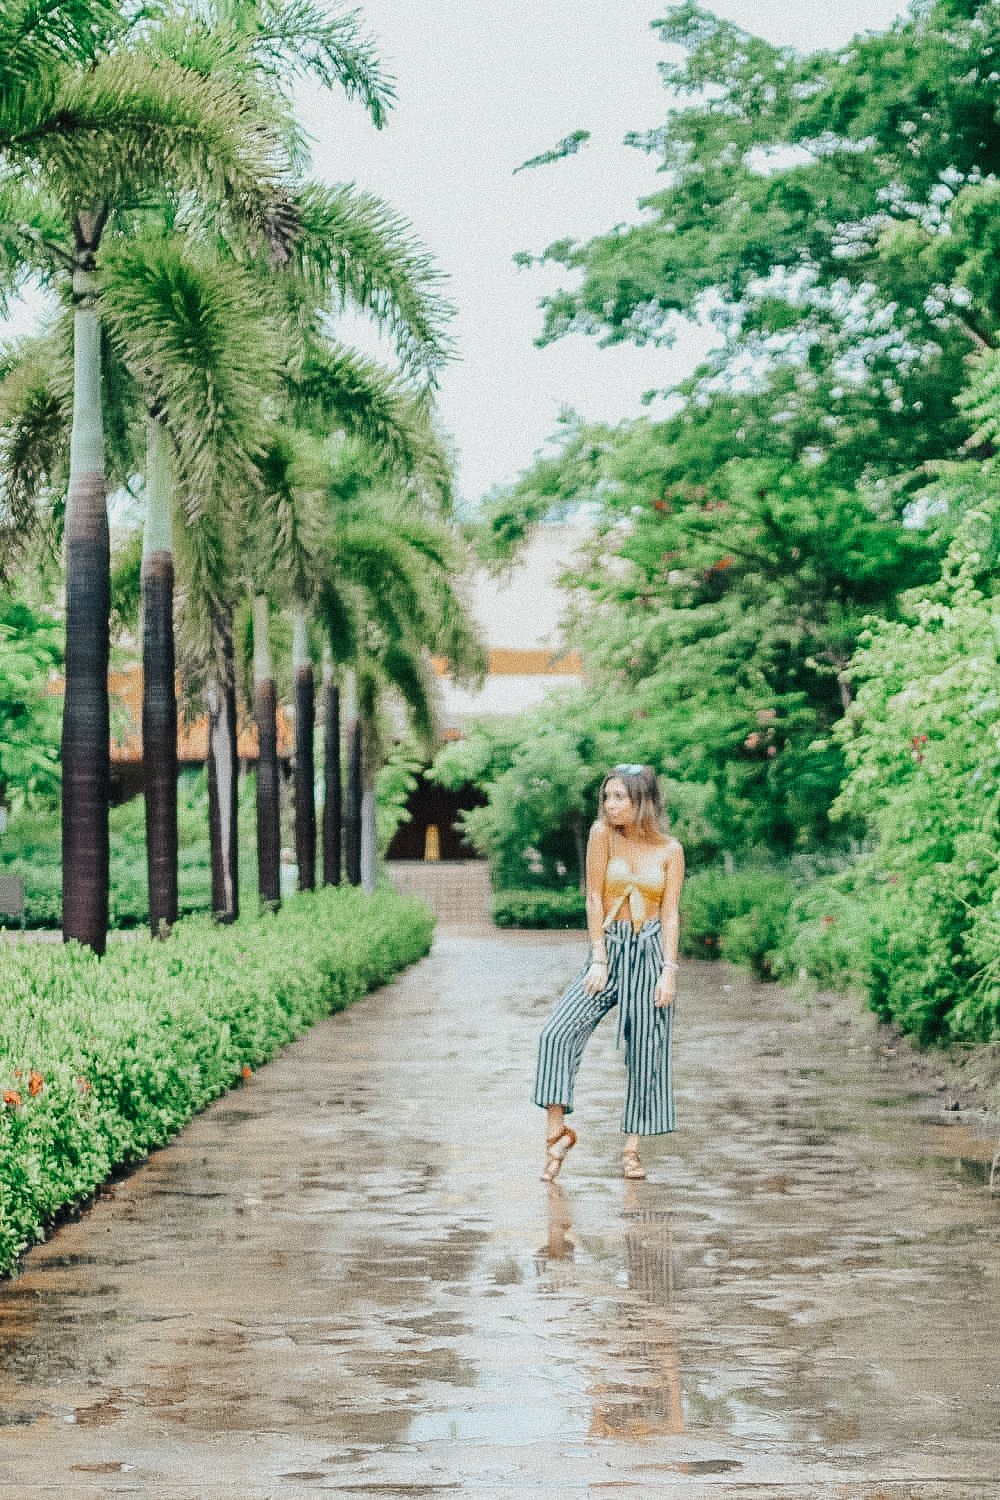 "This picture was 100% taken in the rain… at 7am lol. As I said, it rained a lot while we were there but we weren't gonna let it stop us from enjoying the day. We weren't even phased by it, just apart of the whole ""jungle girl"" lifestyle we were rocking. - Top 